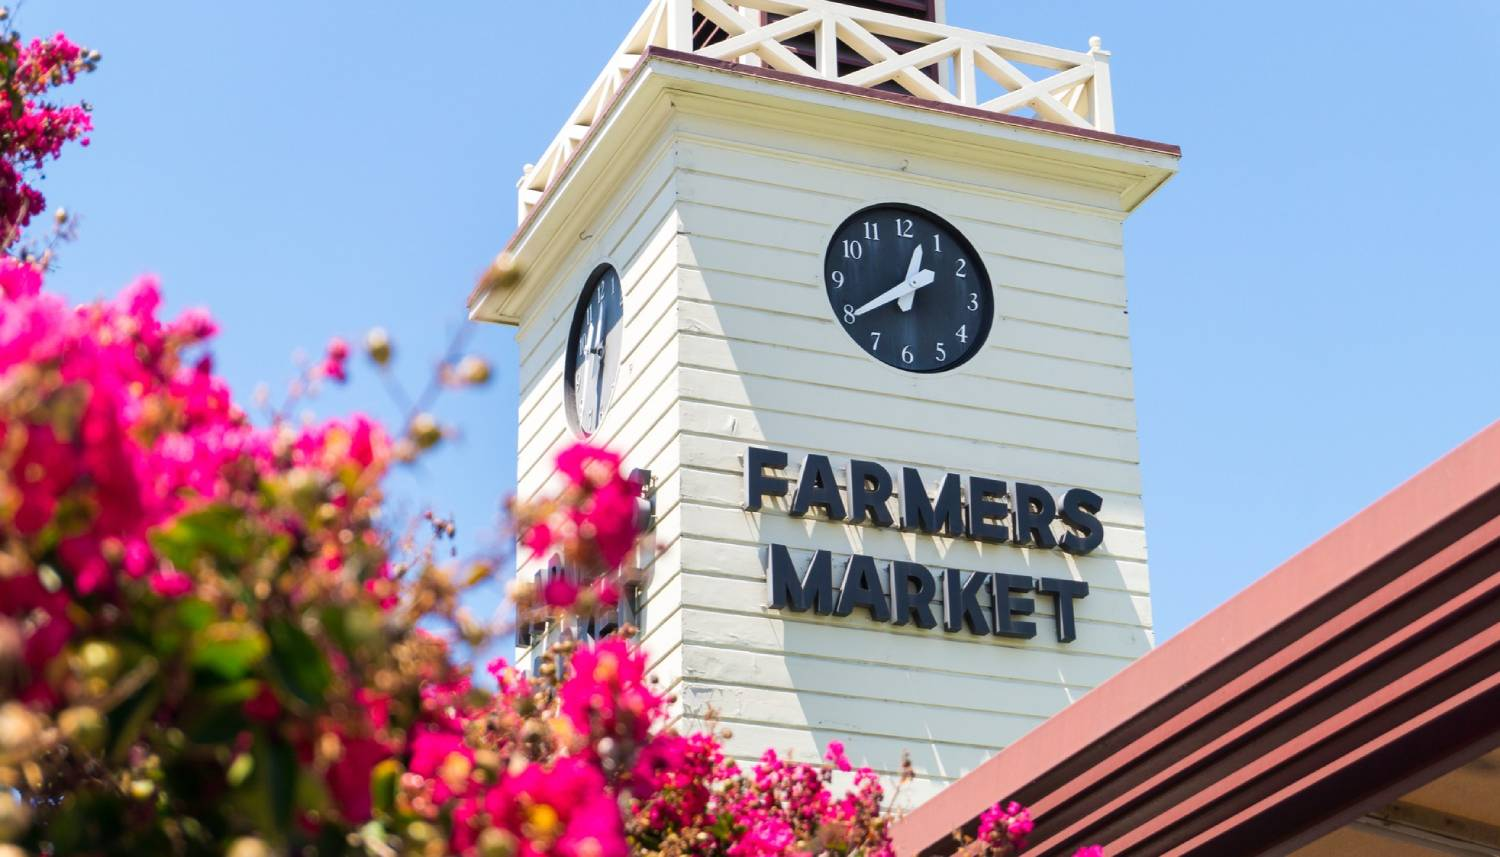 Los Angeles Farmers Market - Things To Do In Los Angeles